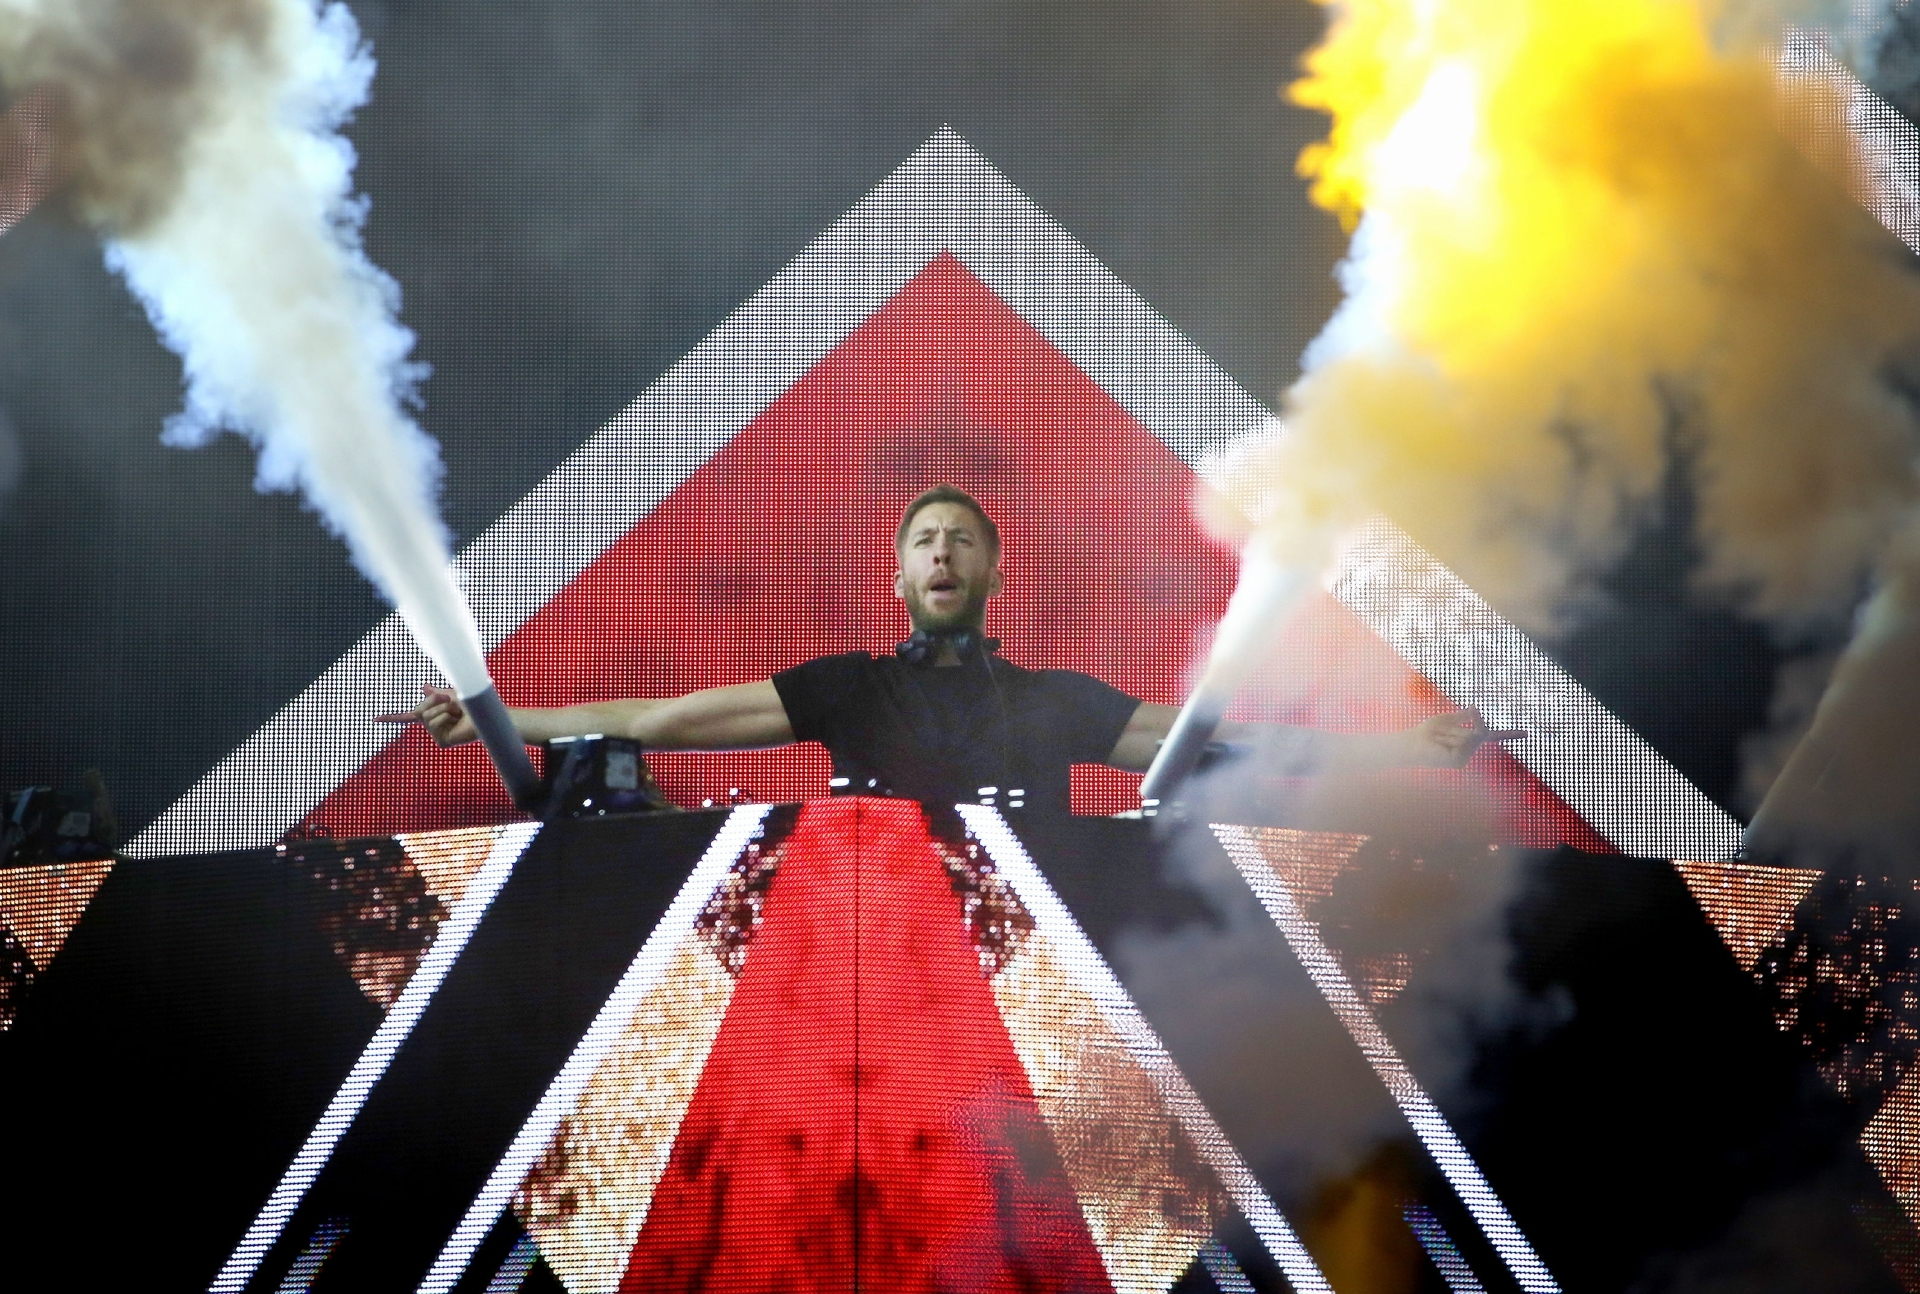 Calvin Harris performing at T in the Park earlier this year